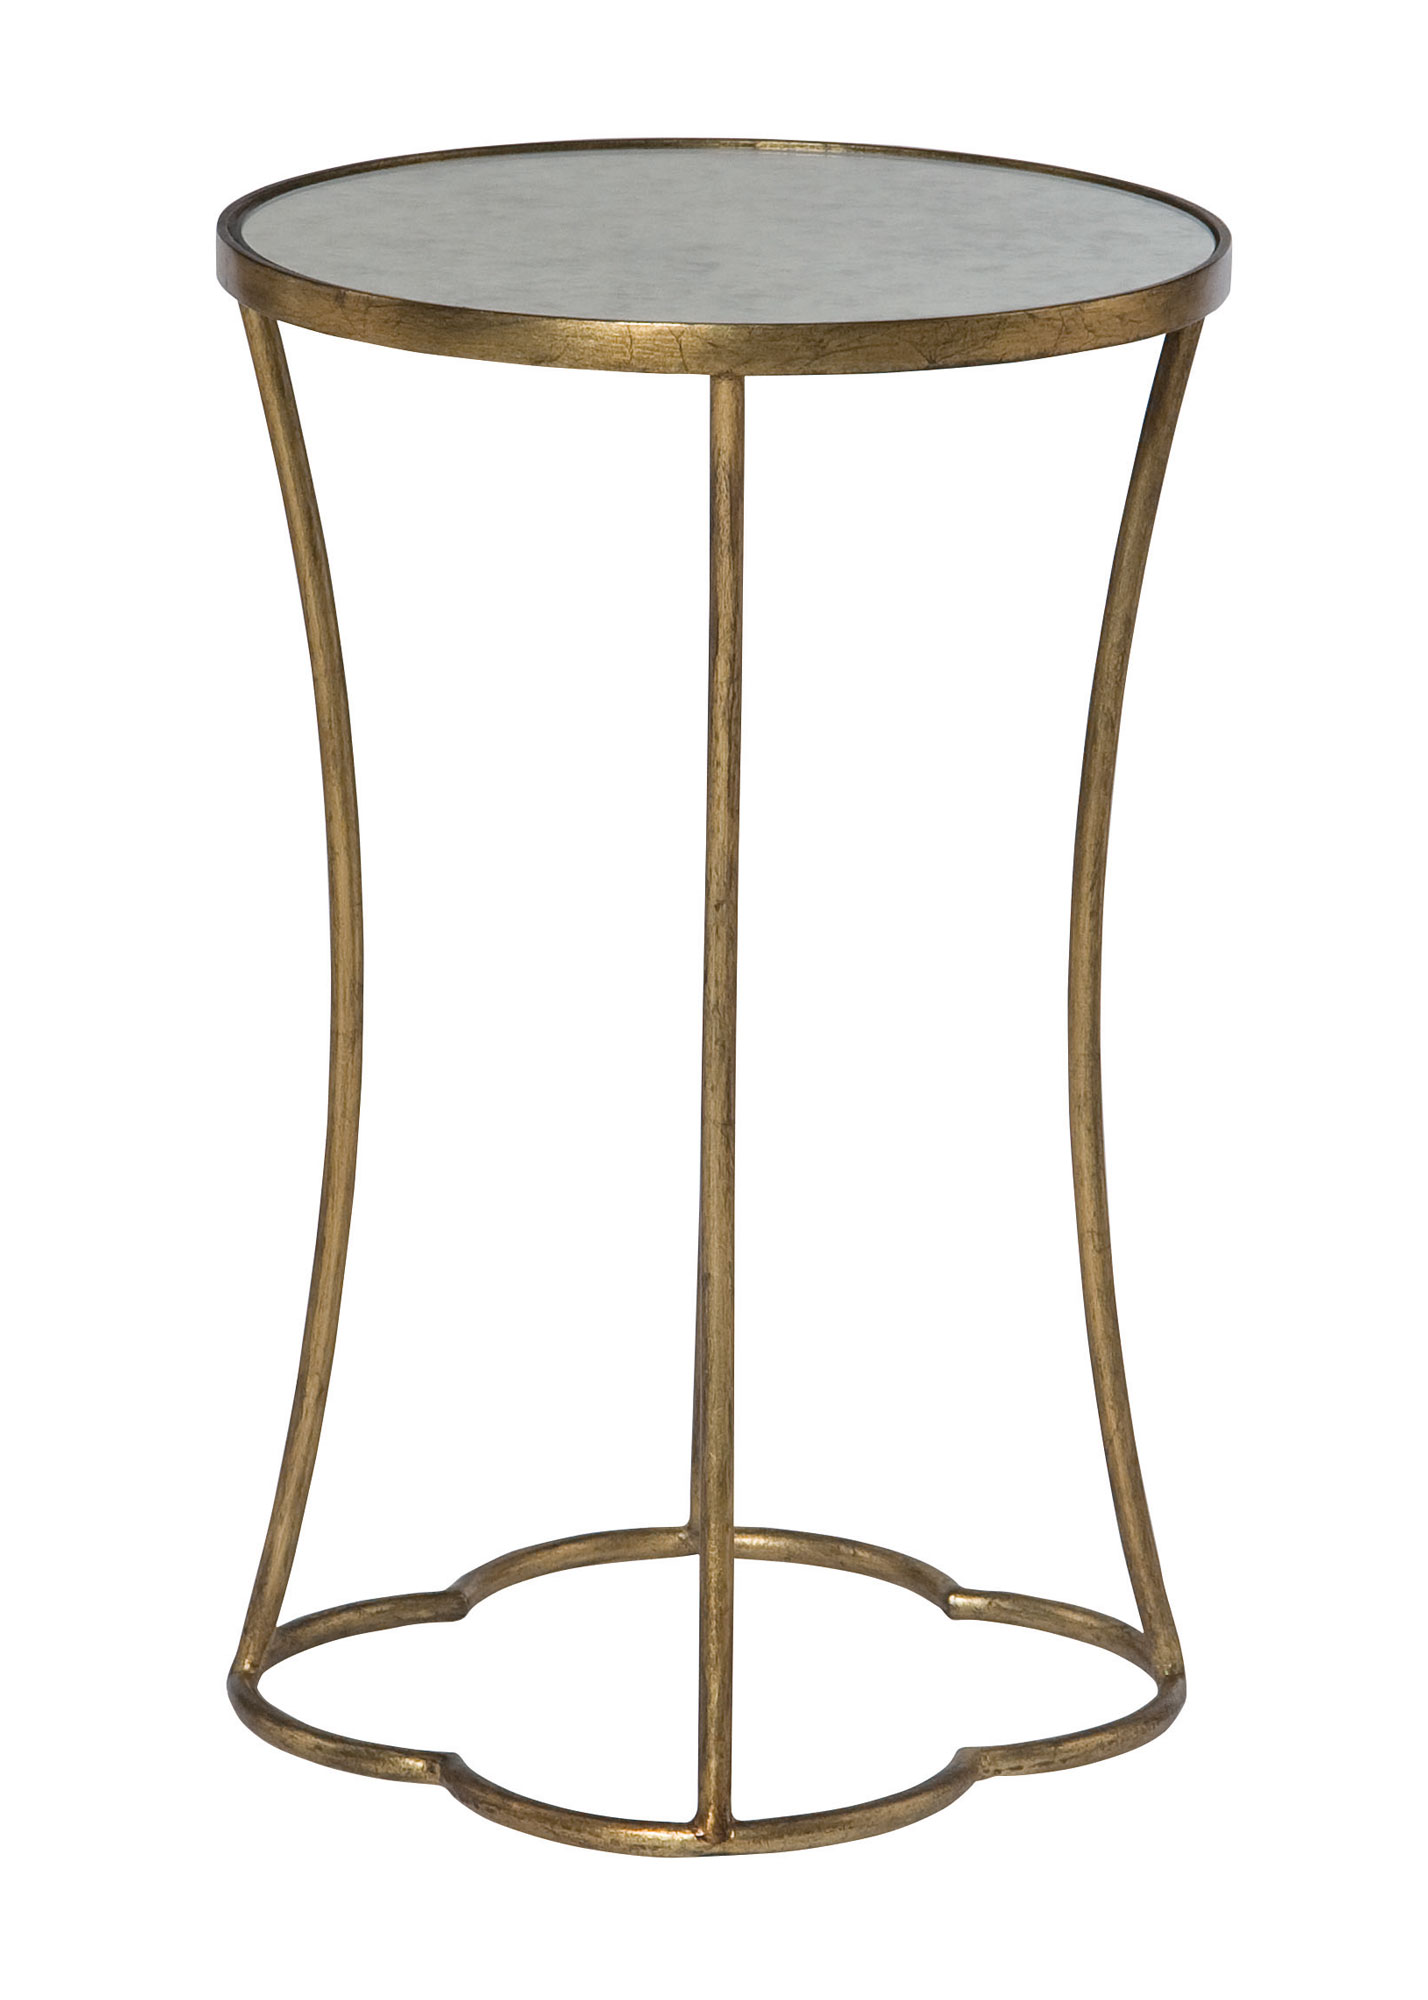 round accent table bernhardt unique small tables floor lamp with shelf attached base white wine cabinet entry and mirror set oval coffee storage black end sets mid century modern